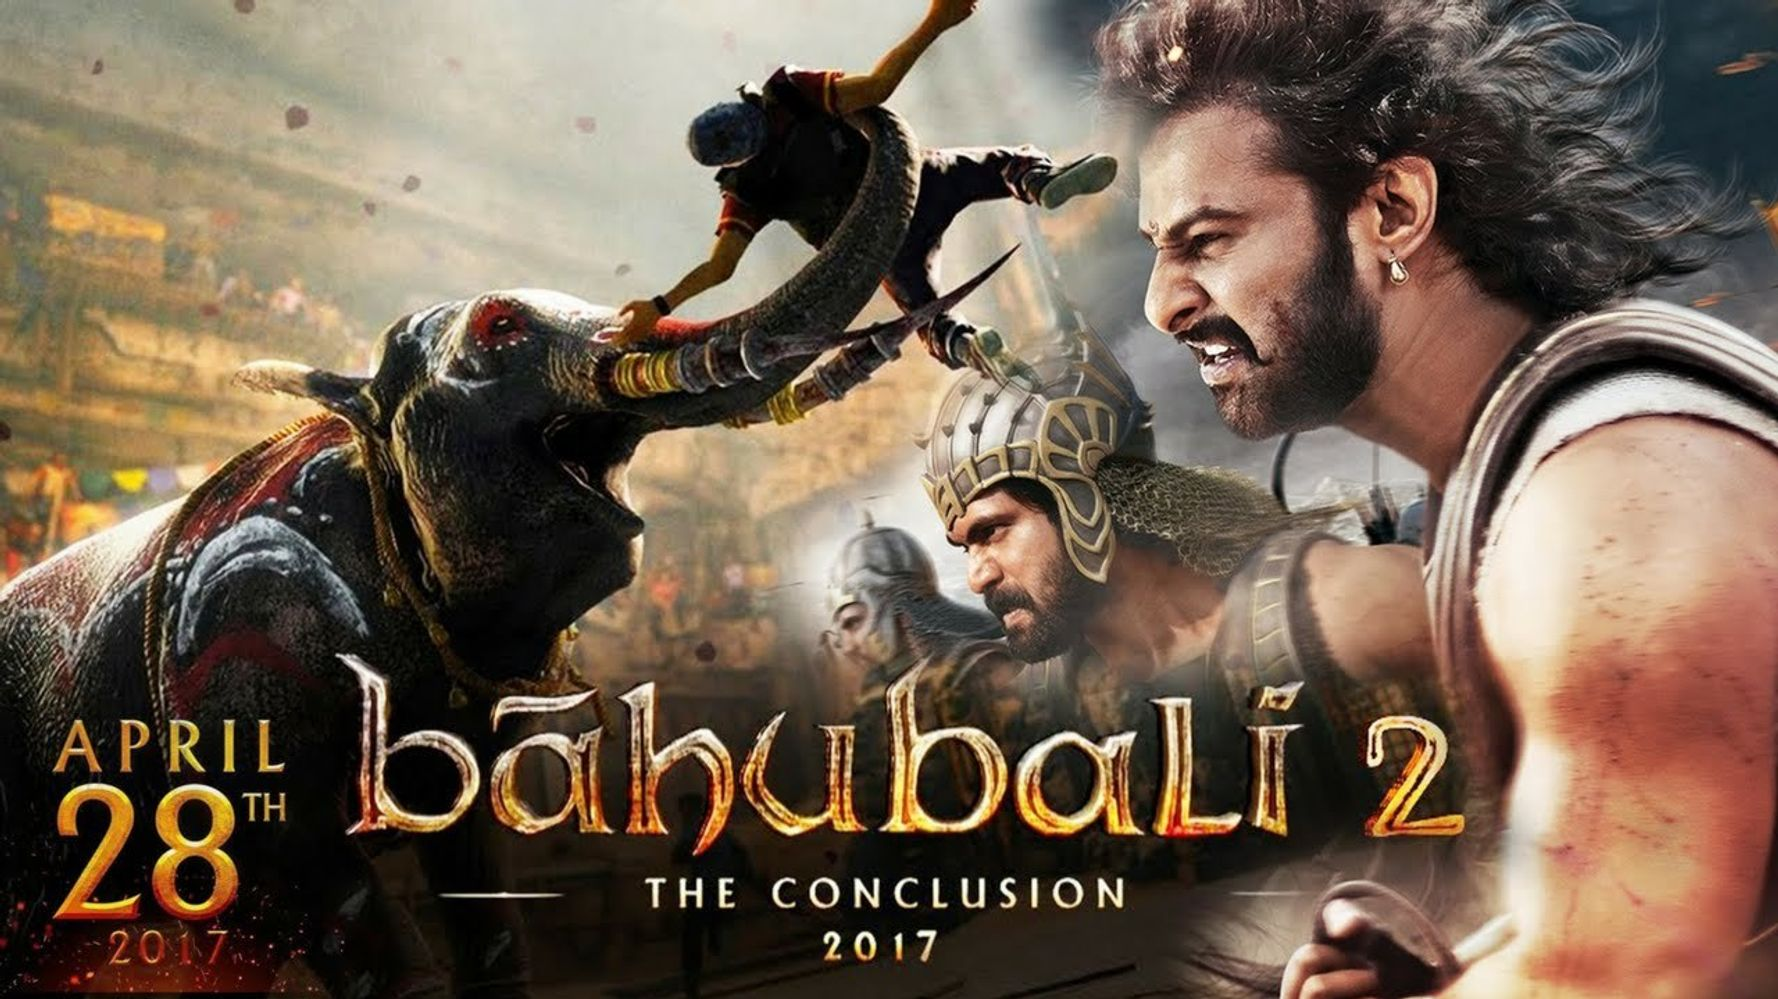 Baahubali 2: India's Blindfolds Are Off, And It's a Dazzling